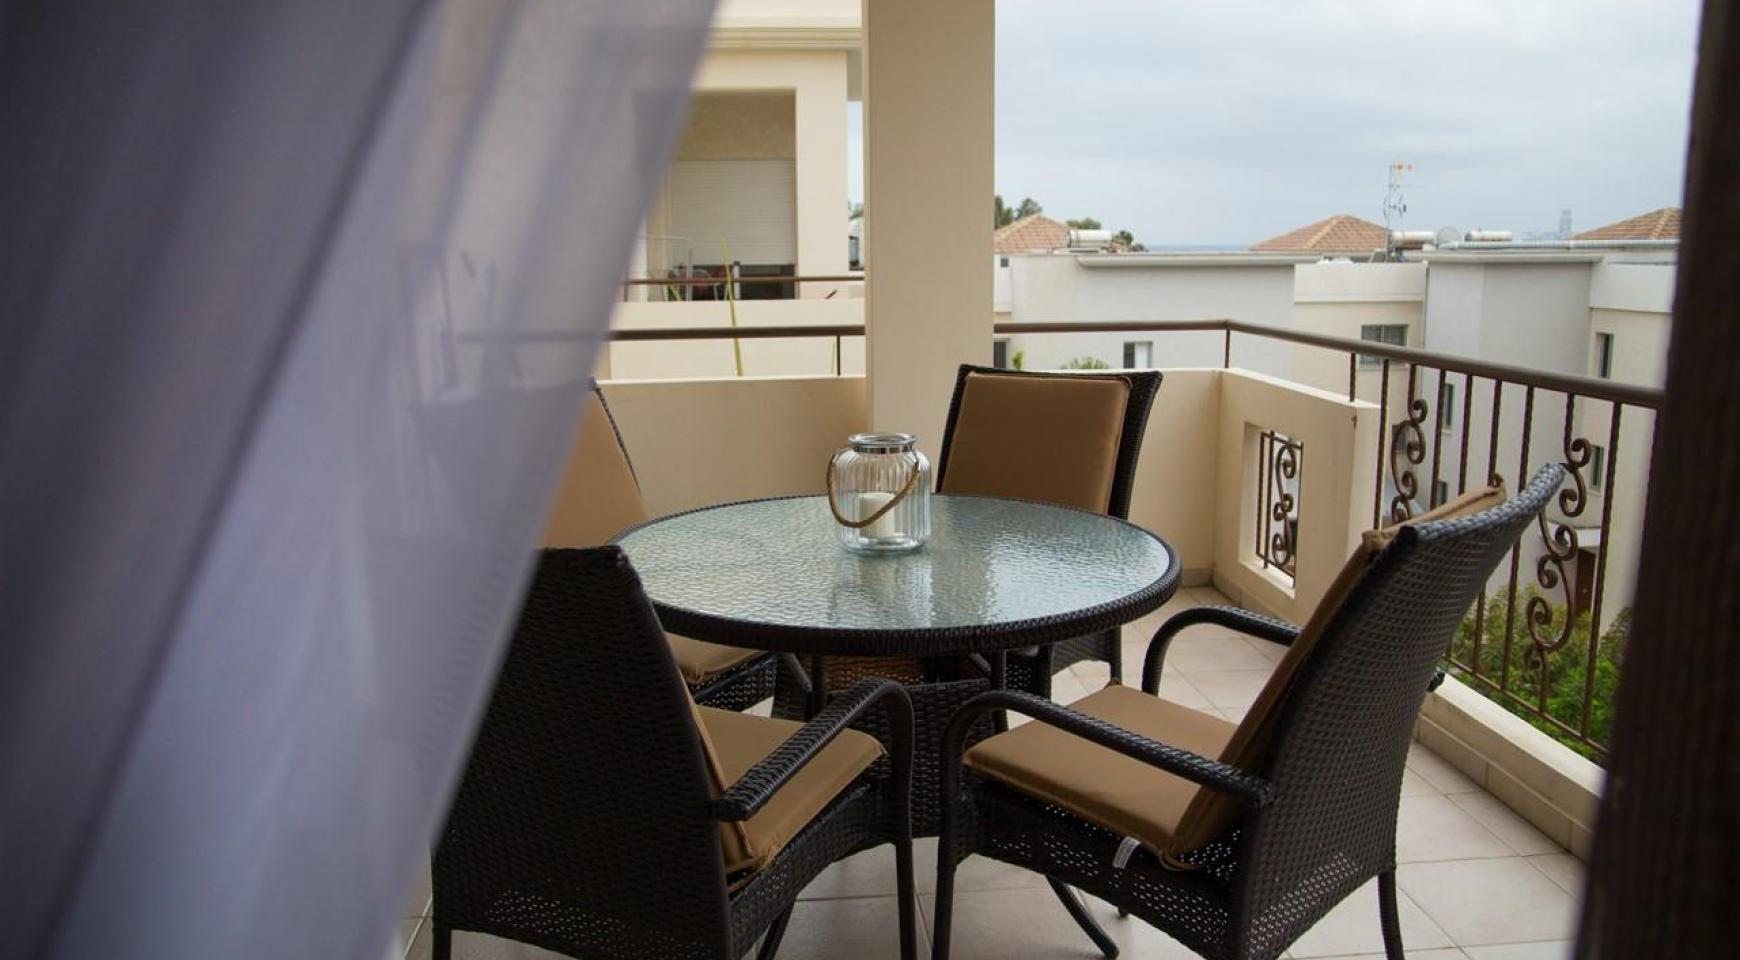 2 Bedroom Apartment in the Complex near the Sea - 10